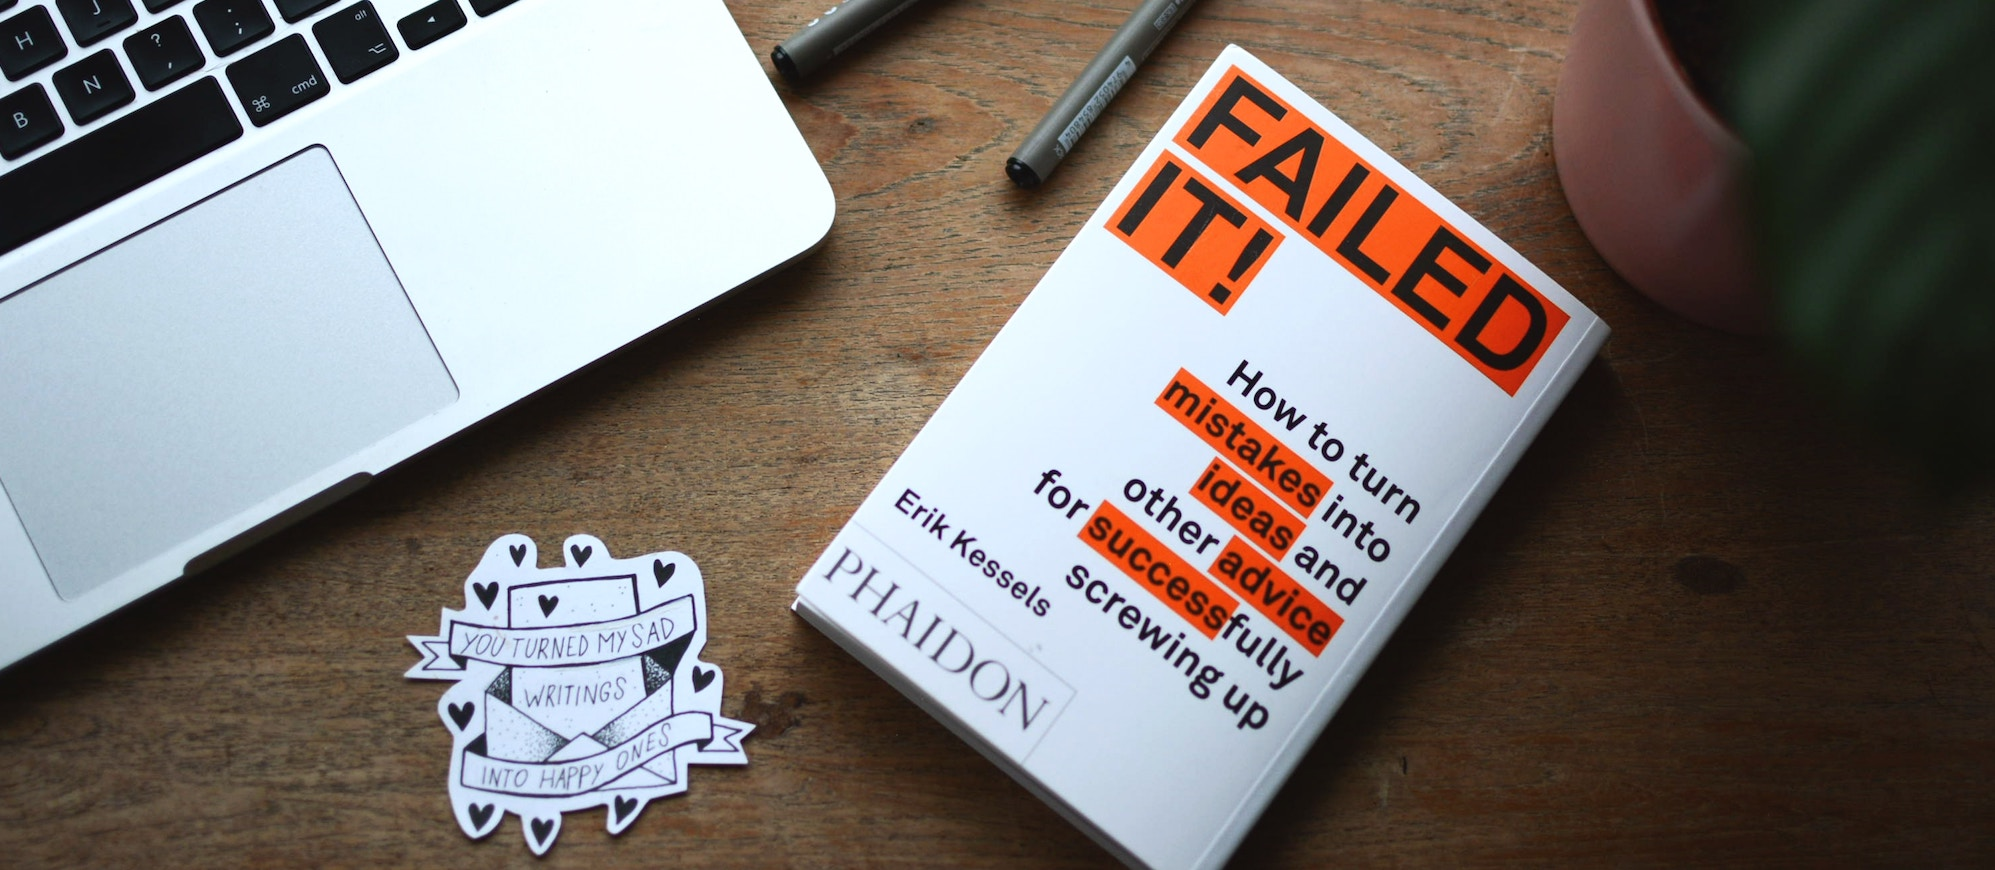 5 Reasons Why Inbound Marketing Fails